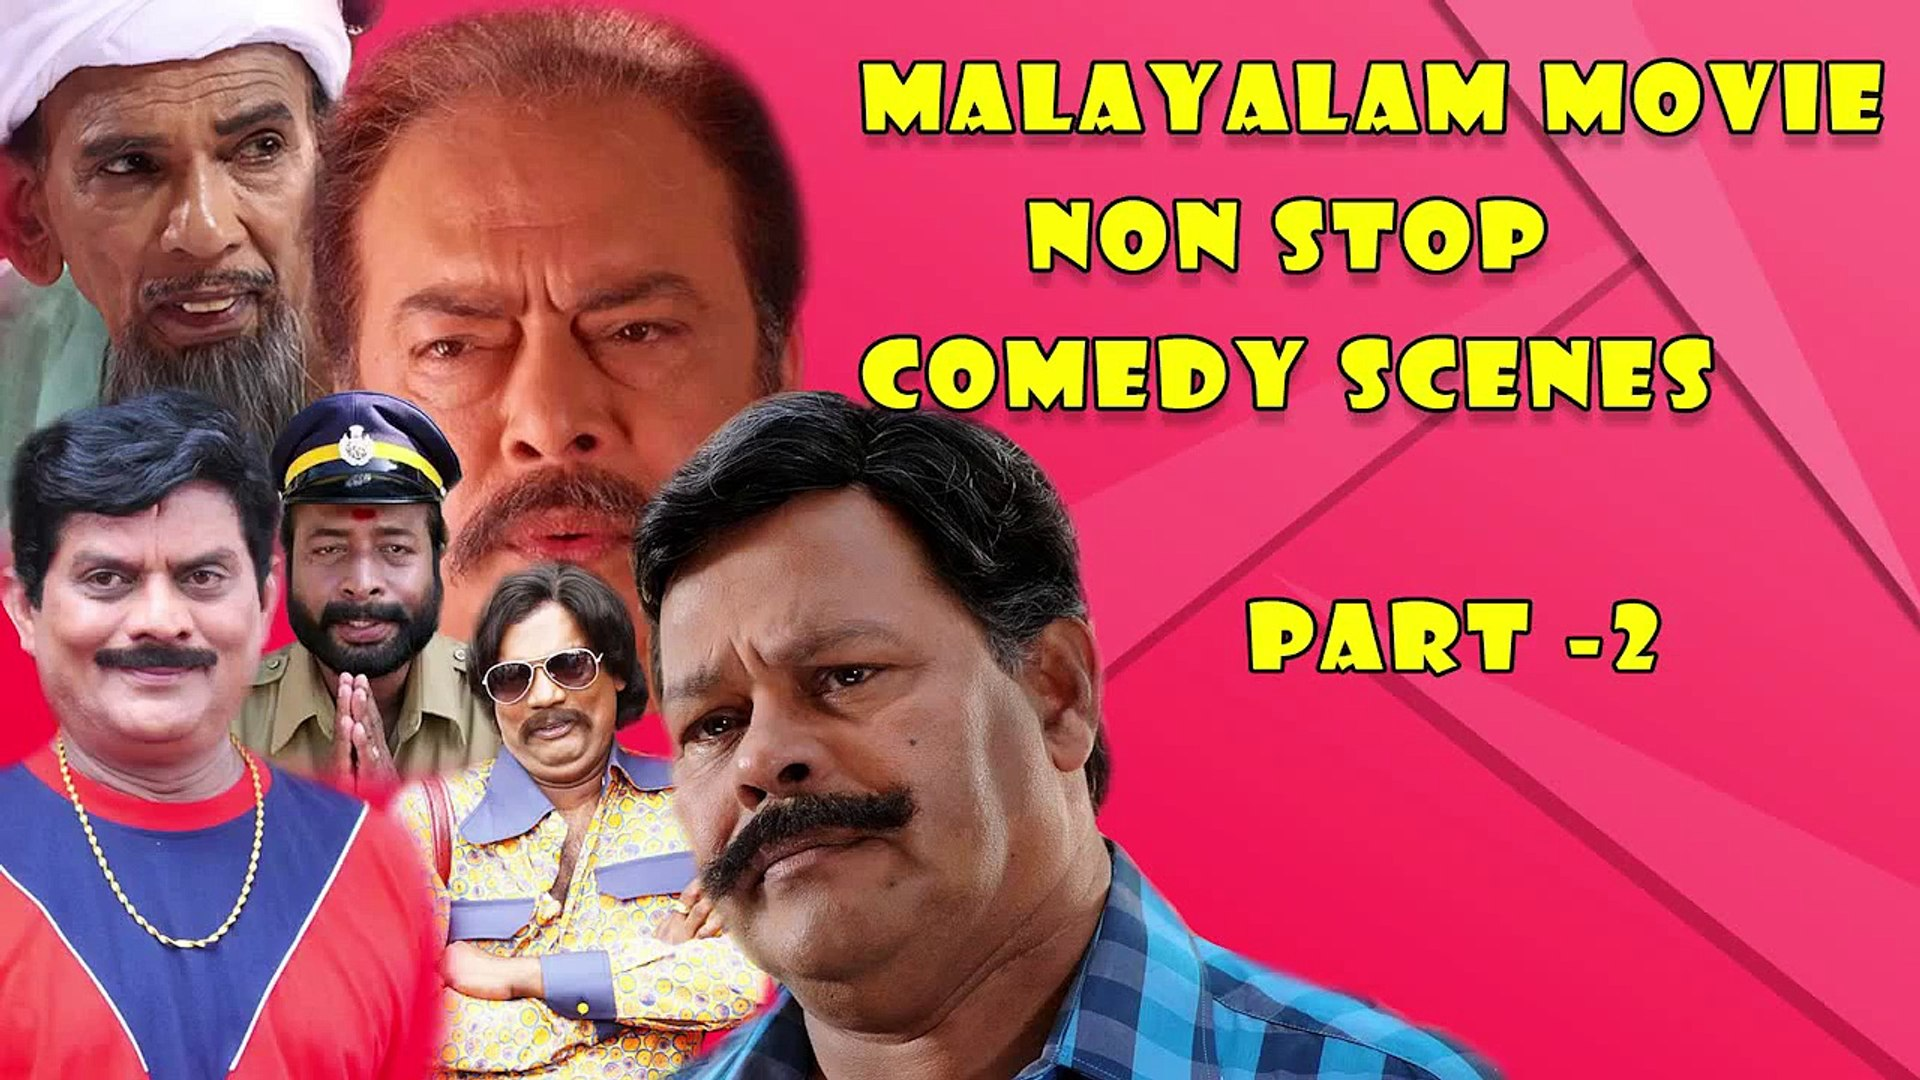 Malayalam Movie Non Stop Comedy Scenes 2 | Malayalam Comedy Scenes | Malayalam Movie Comed